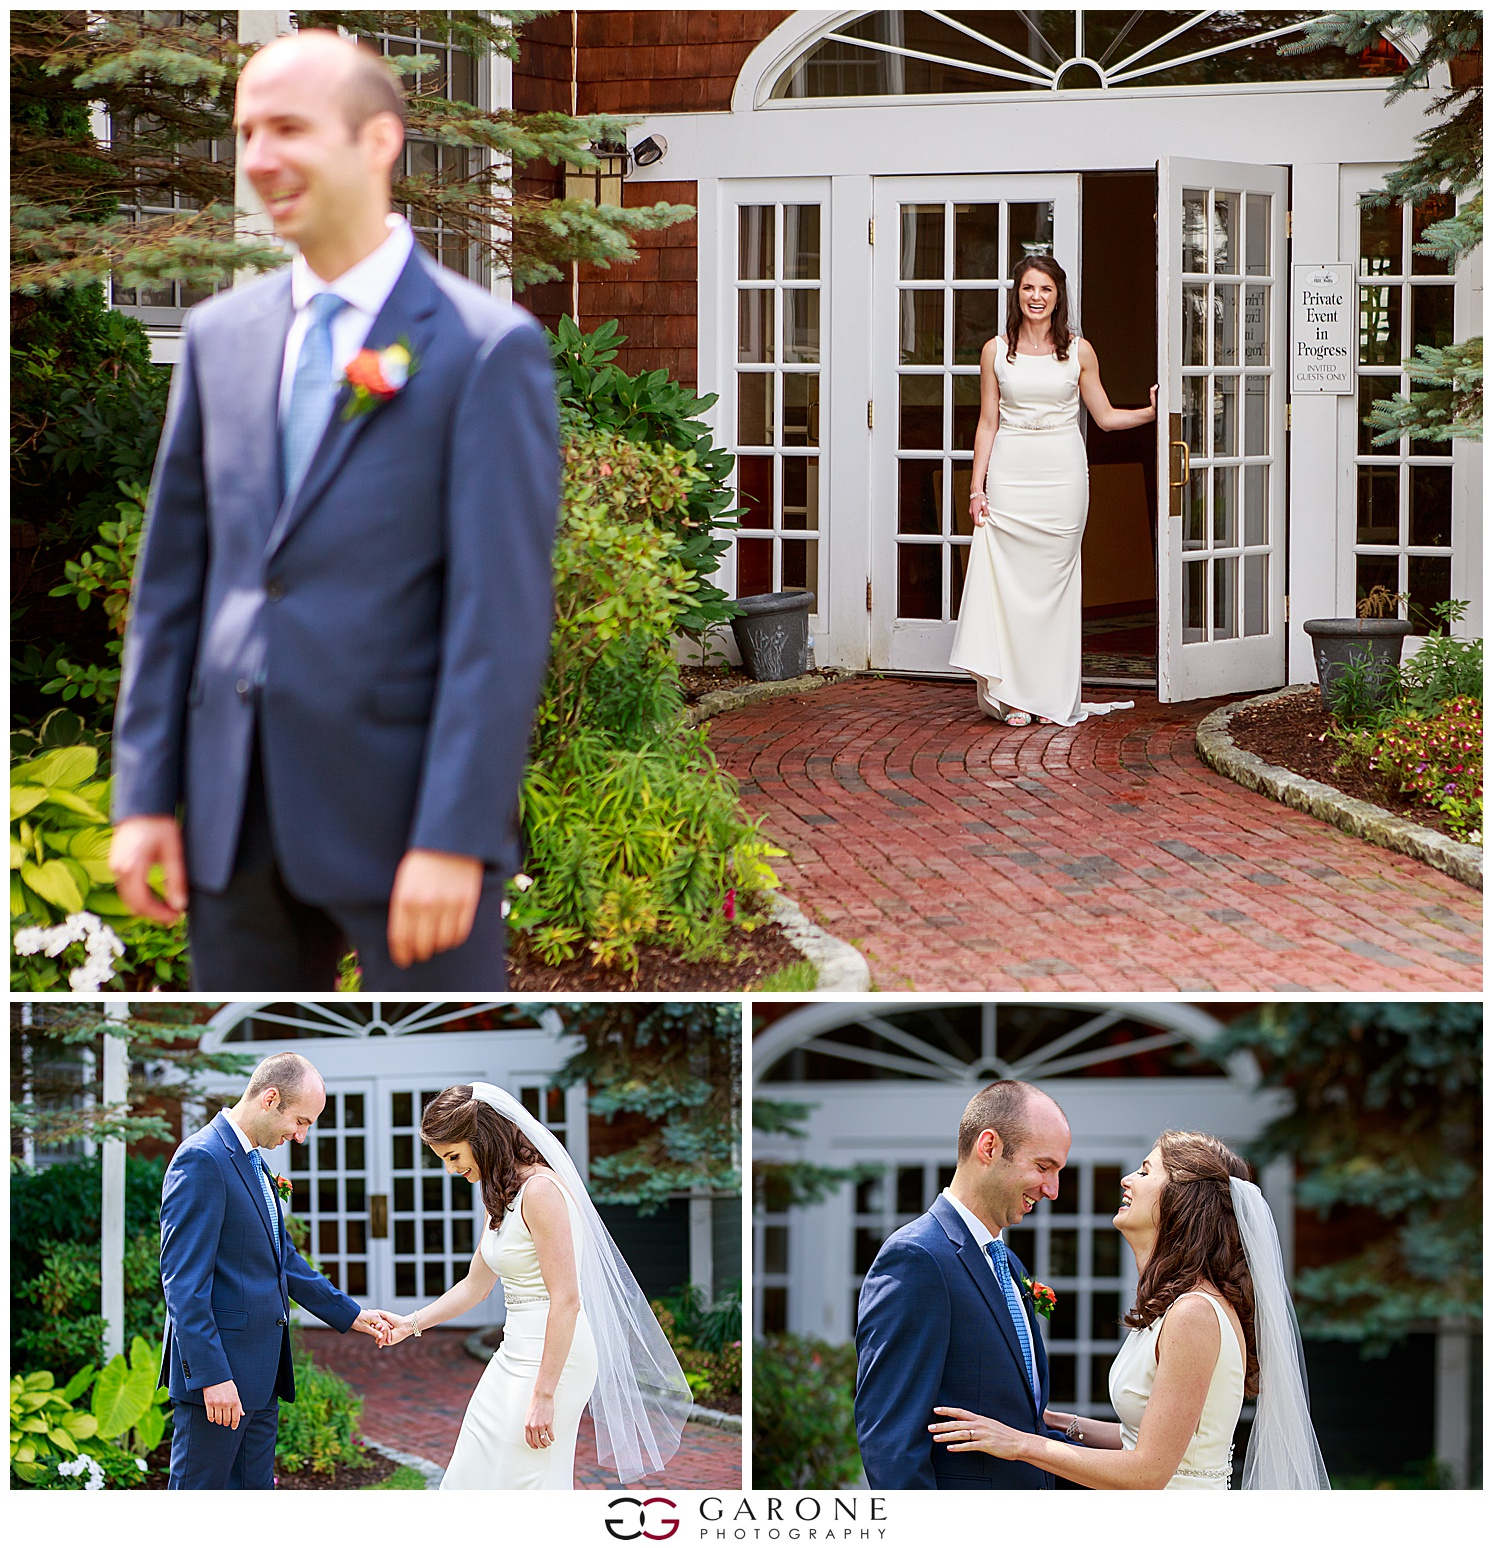 Church_Landing_Garone_Photography_Wedding_Sarah_Patrick_0006.jpg